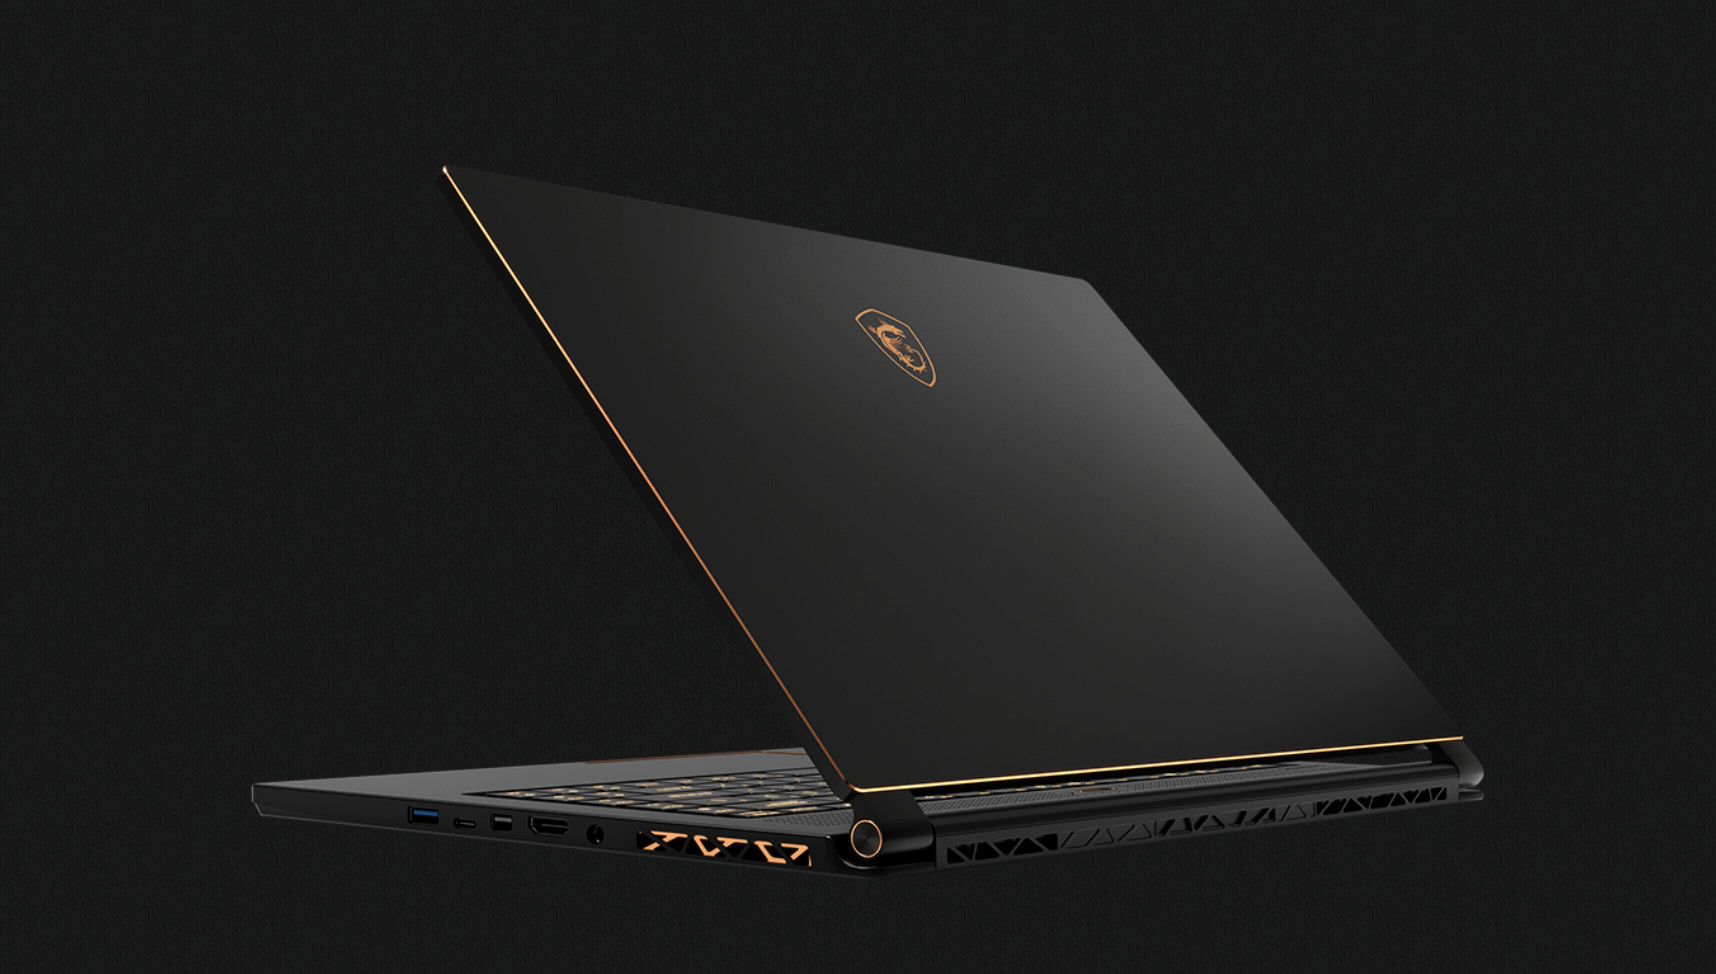 MSI's GS65 Stealth Thin packs Intel's 8th-generation CPU and